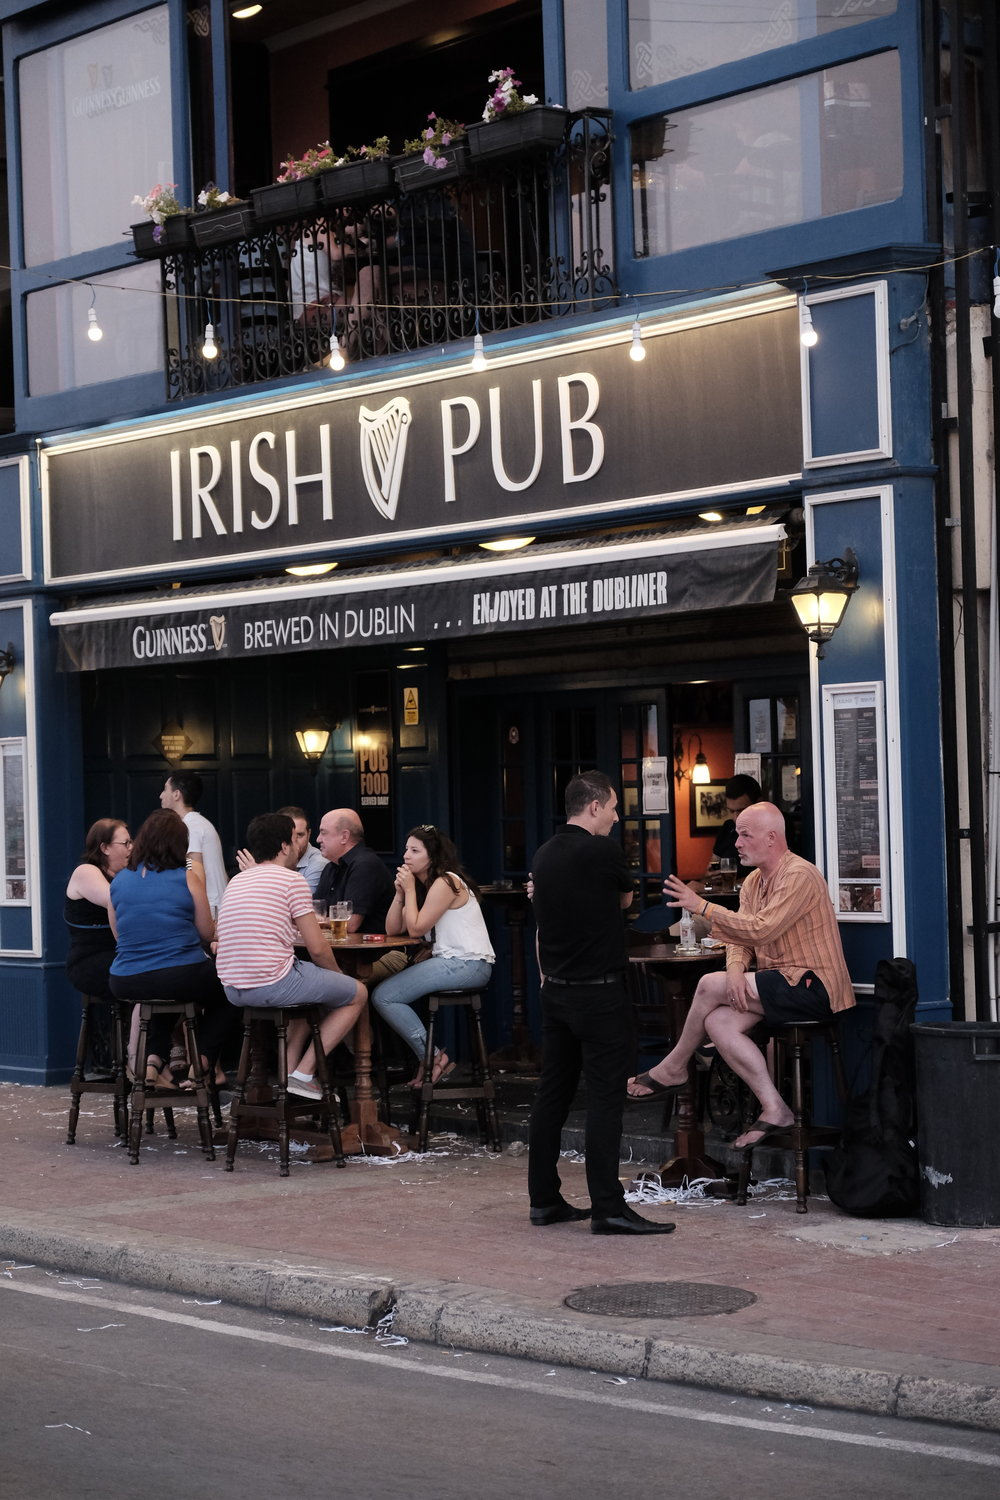 A typical Irish pub found worldwide. This one is in St Julien's in Malta.